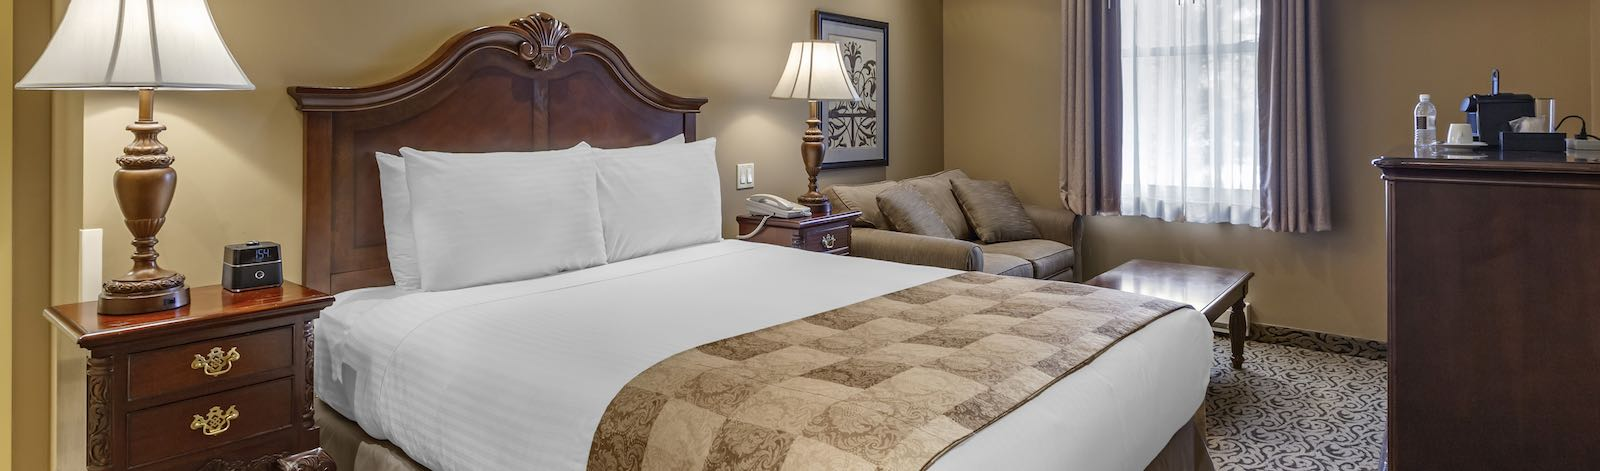 Hotel room rates for The Parlour Inn, Stratford, Ontario